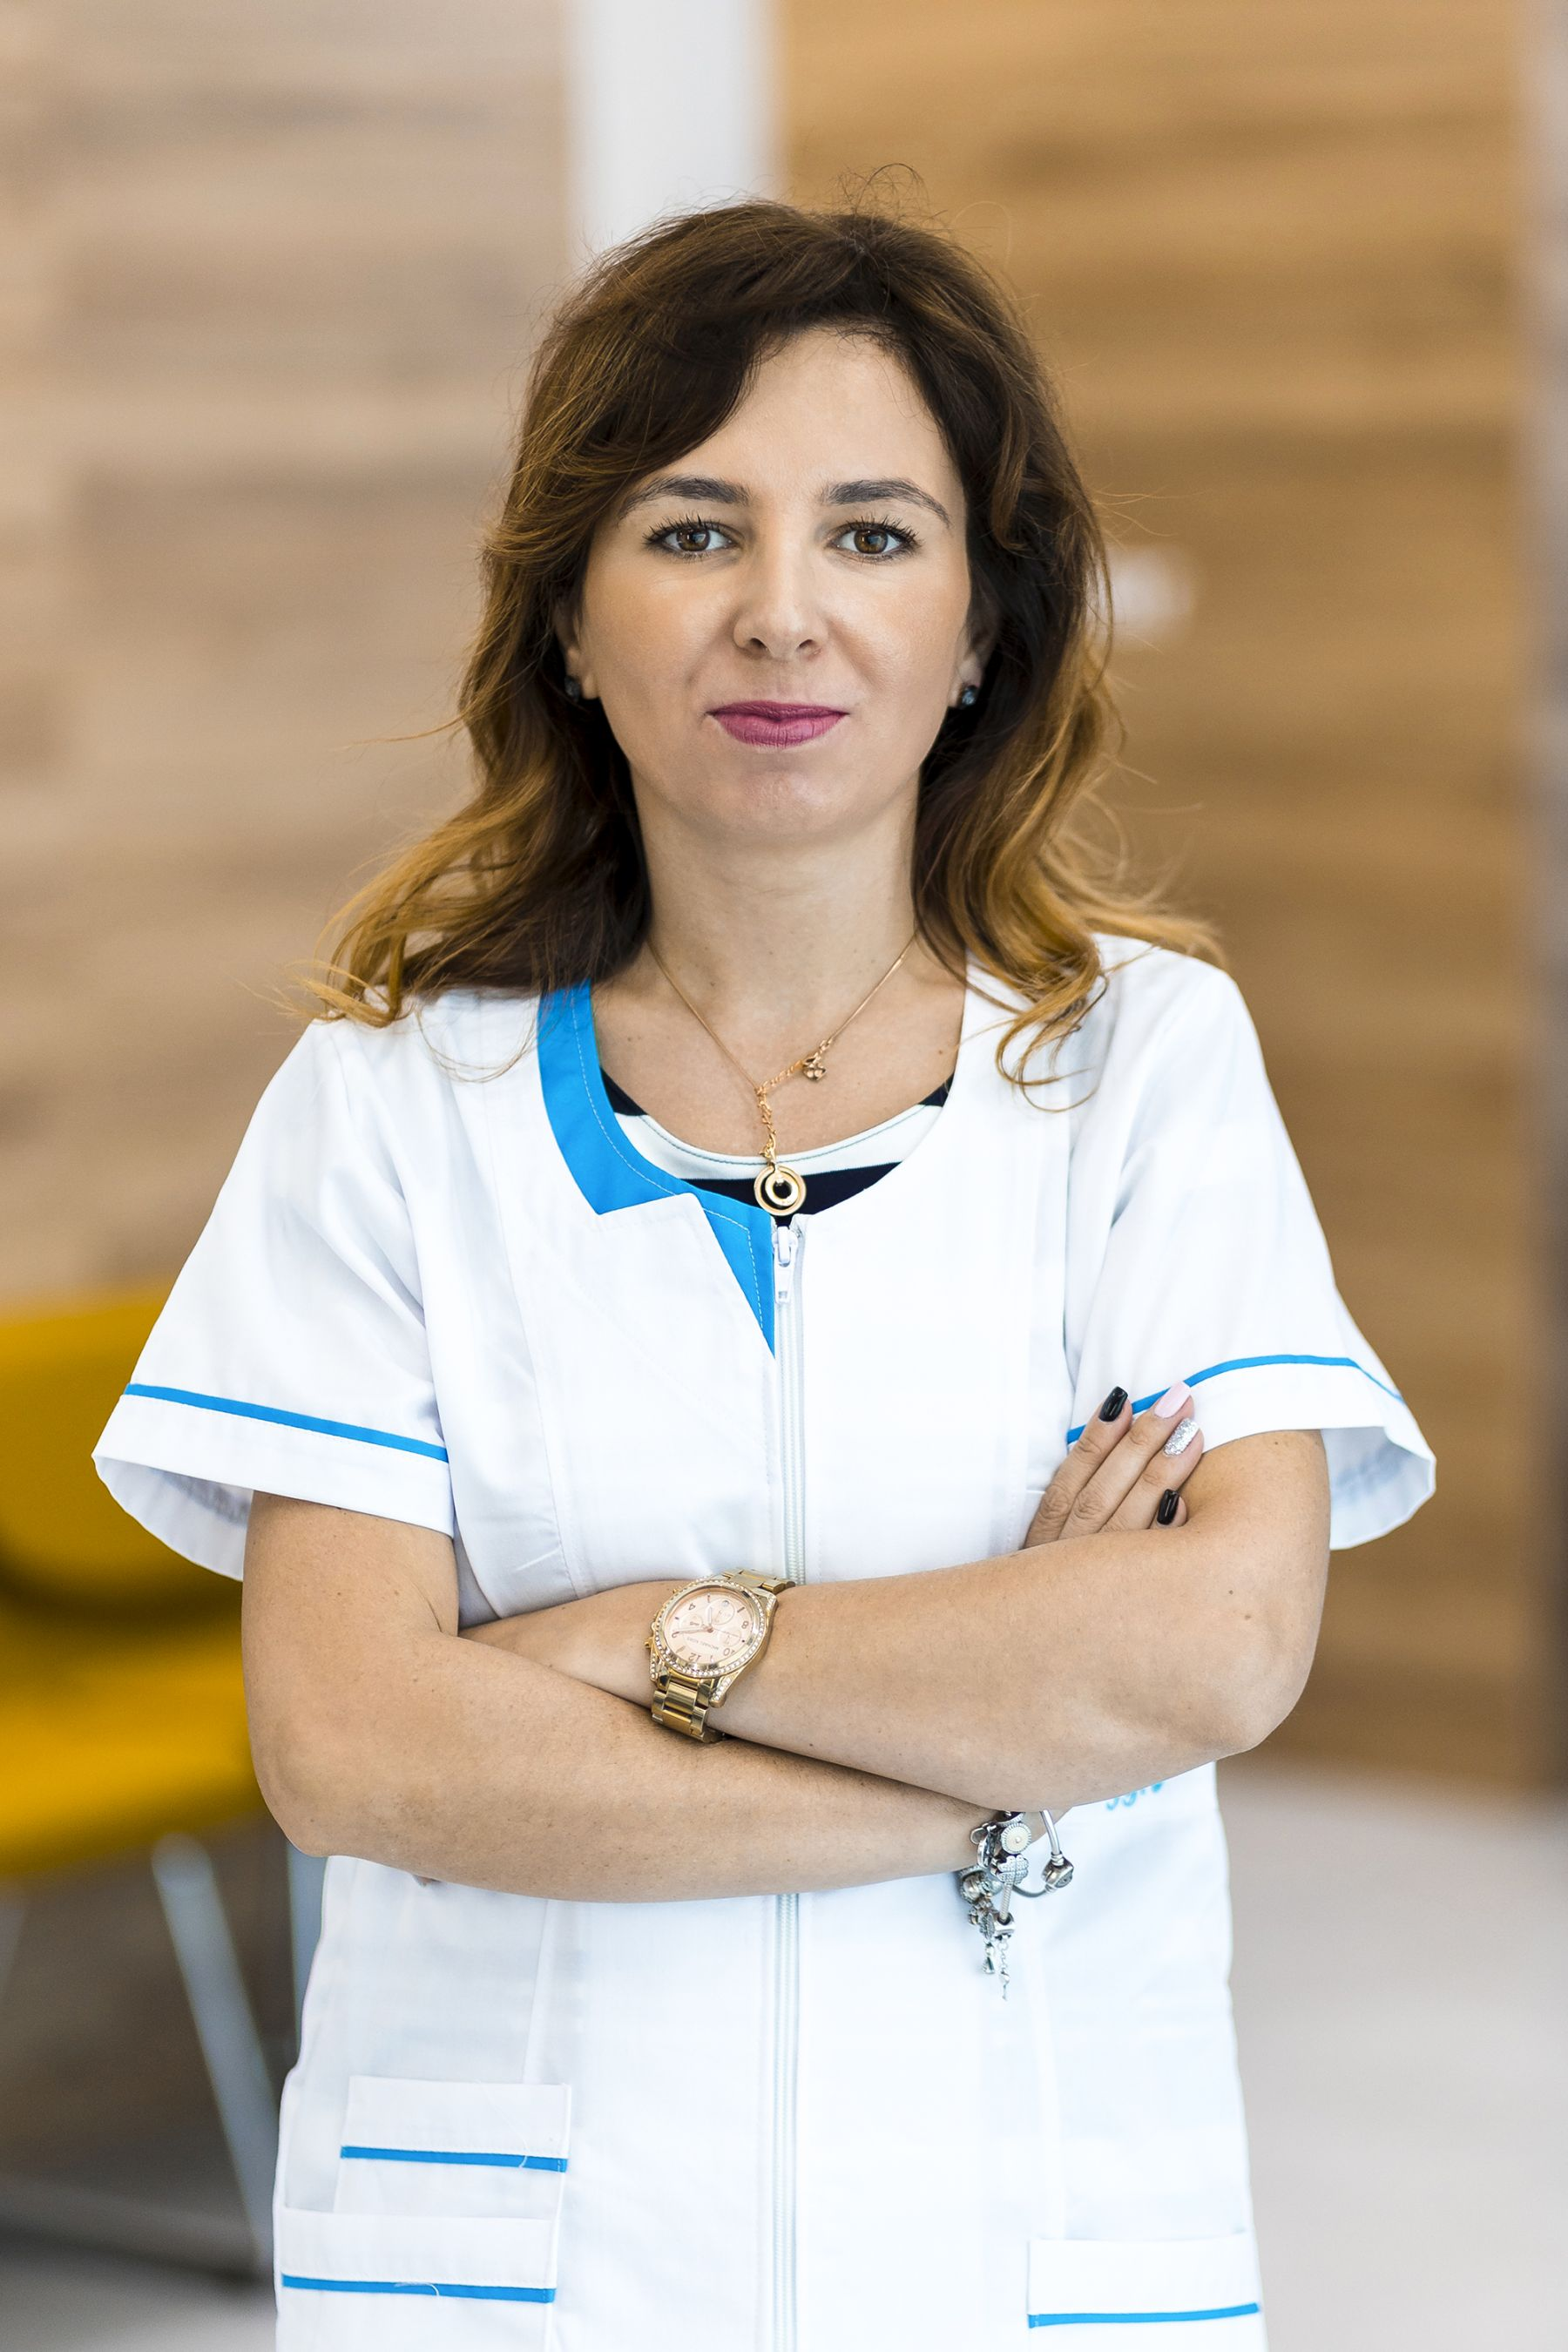 Dr. Oancea Ana-Maria : Medic specialist obstetrică-ginecologie